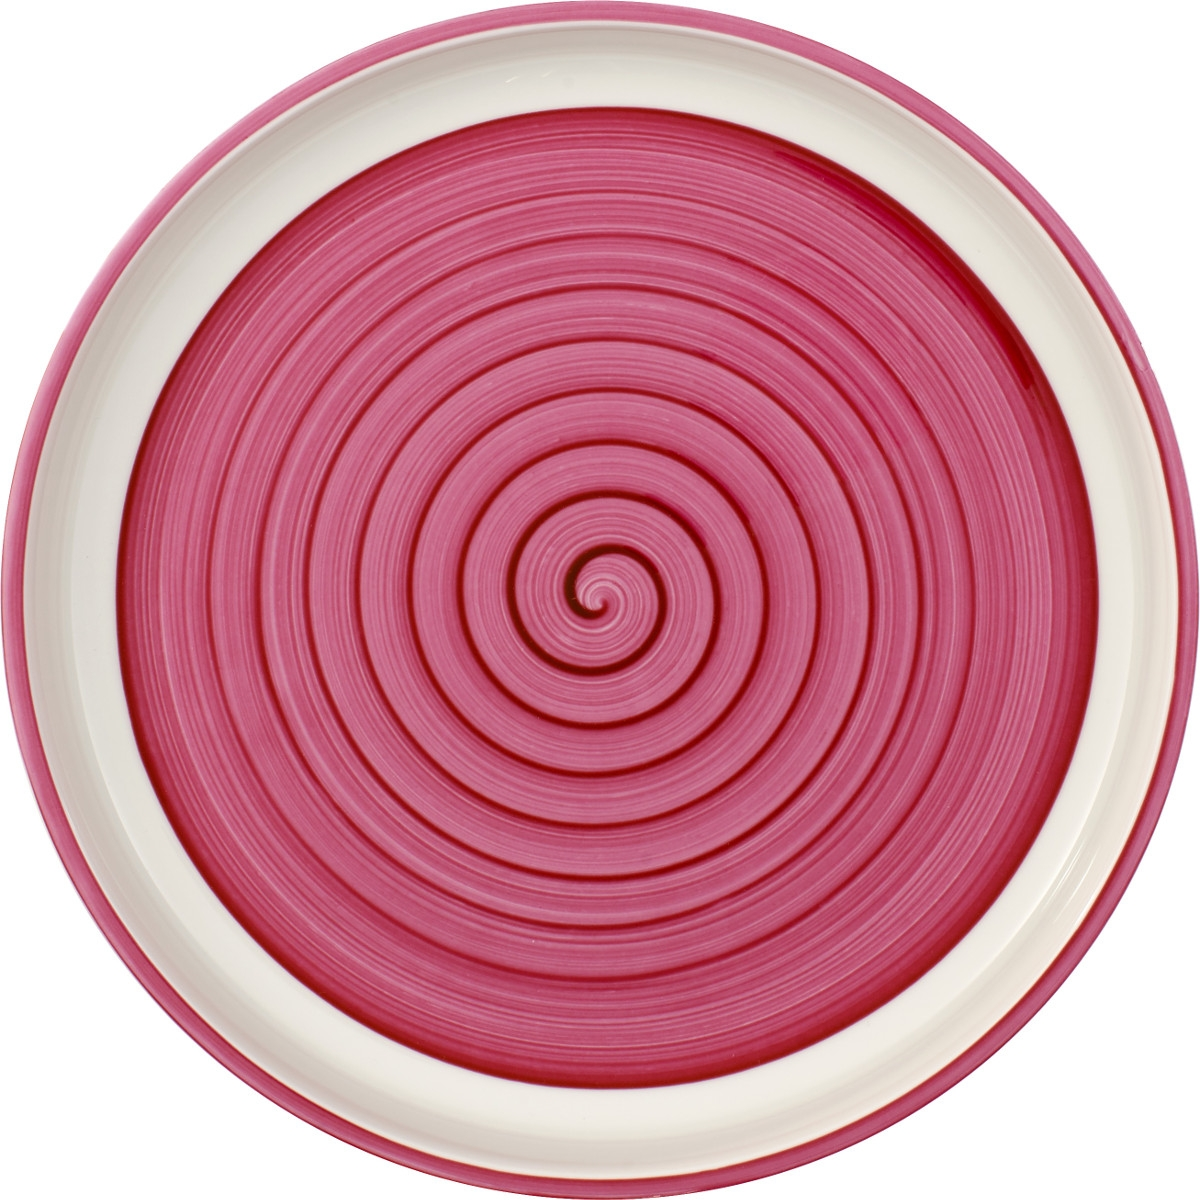 Platou rotund Villeroy & Boch Clever Cooking 30cm roz poza